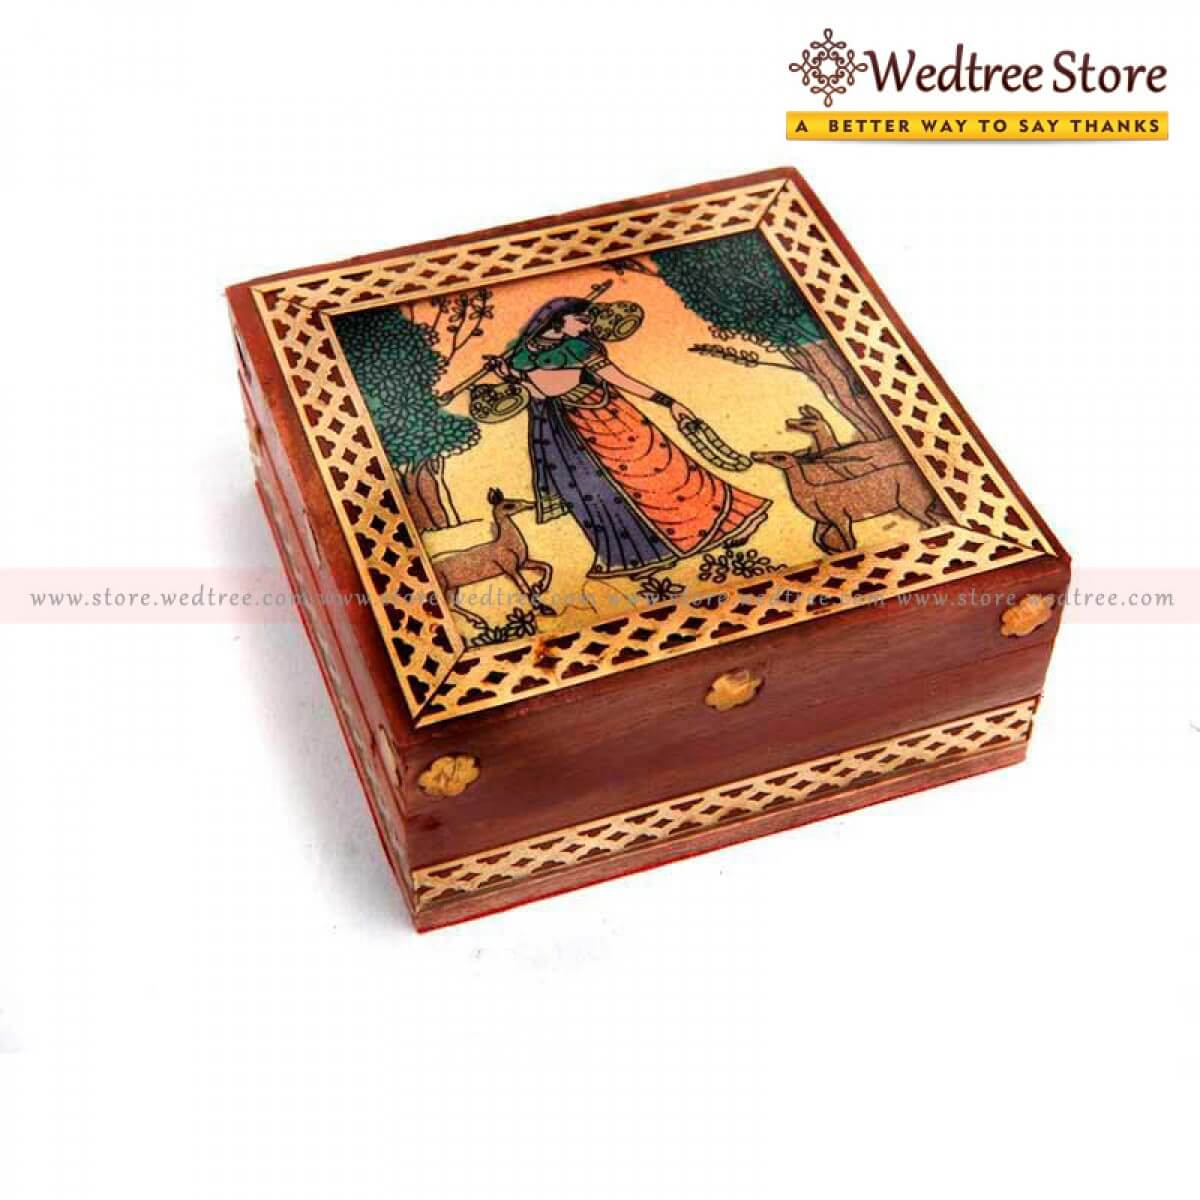 Indian Wedding Gifts: Wedding Gift Ideas For Guests:10 Great Ways To Thank Them